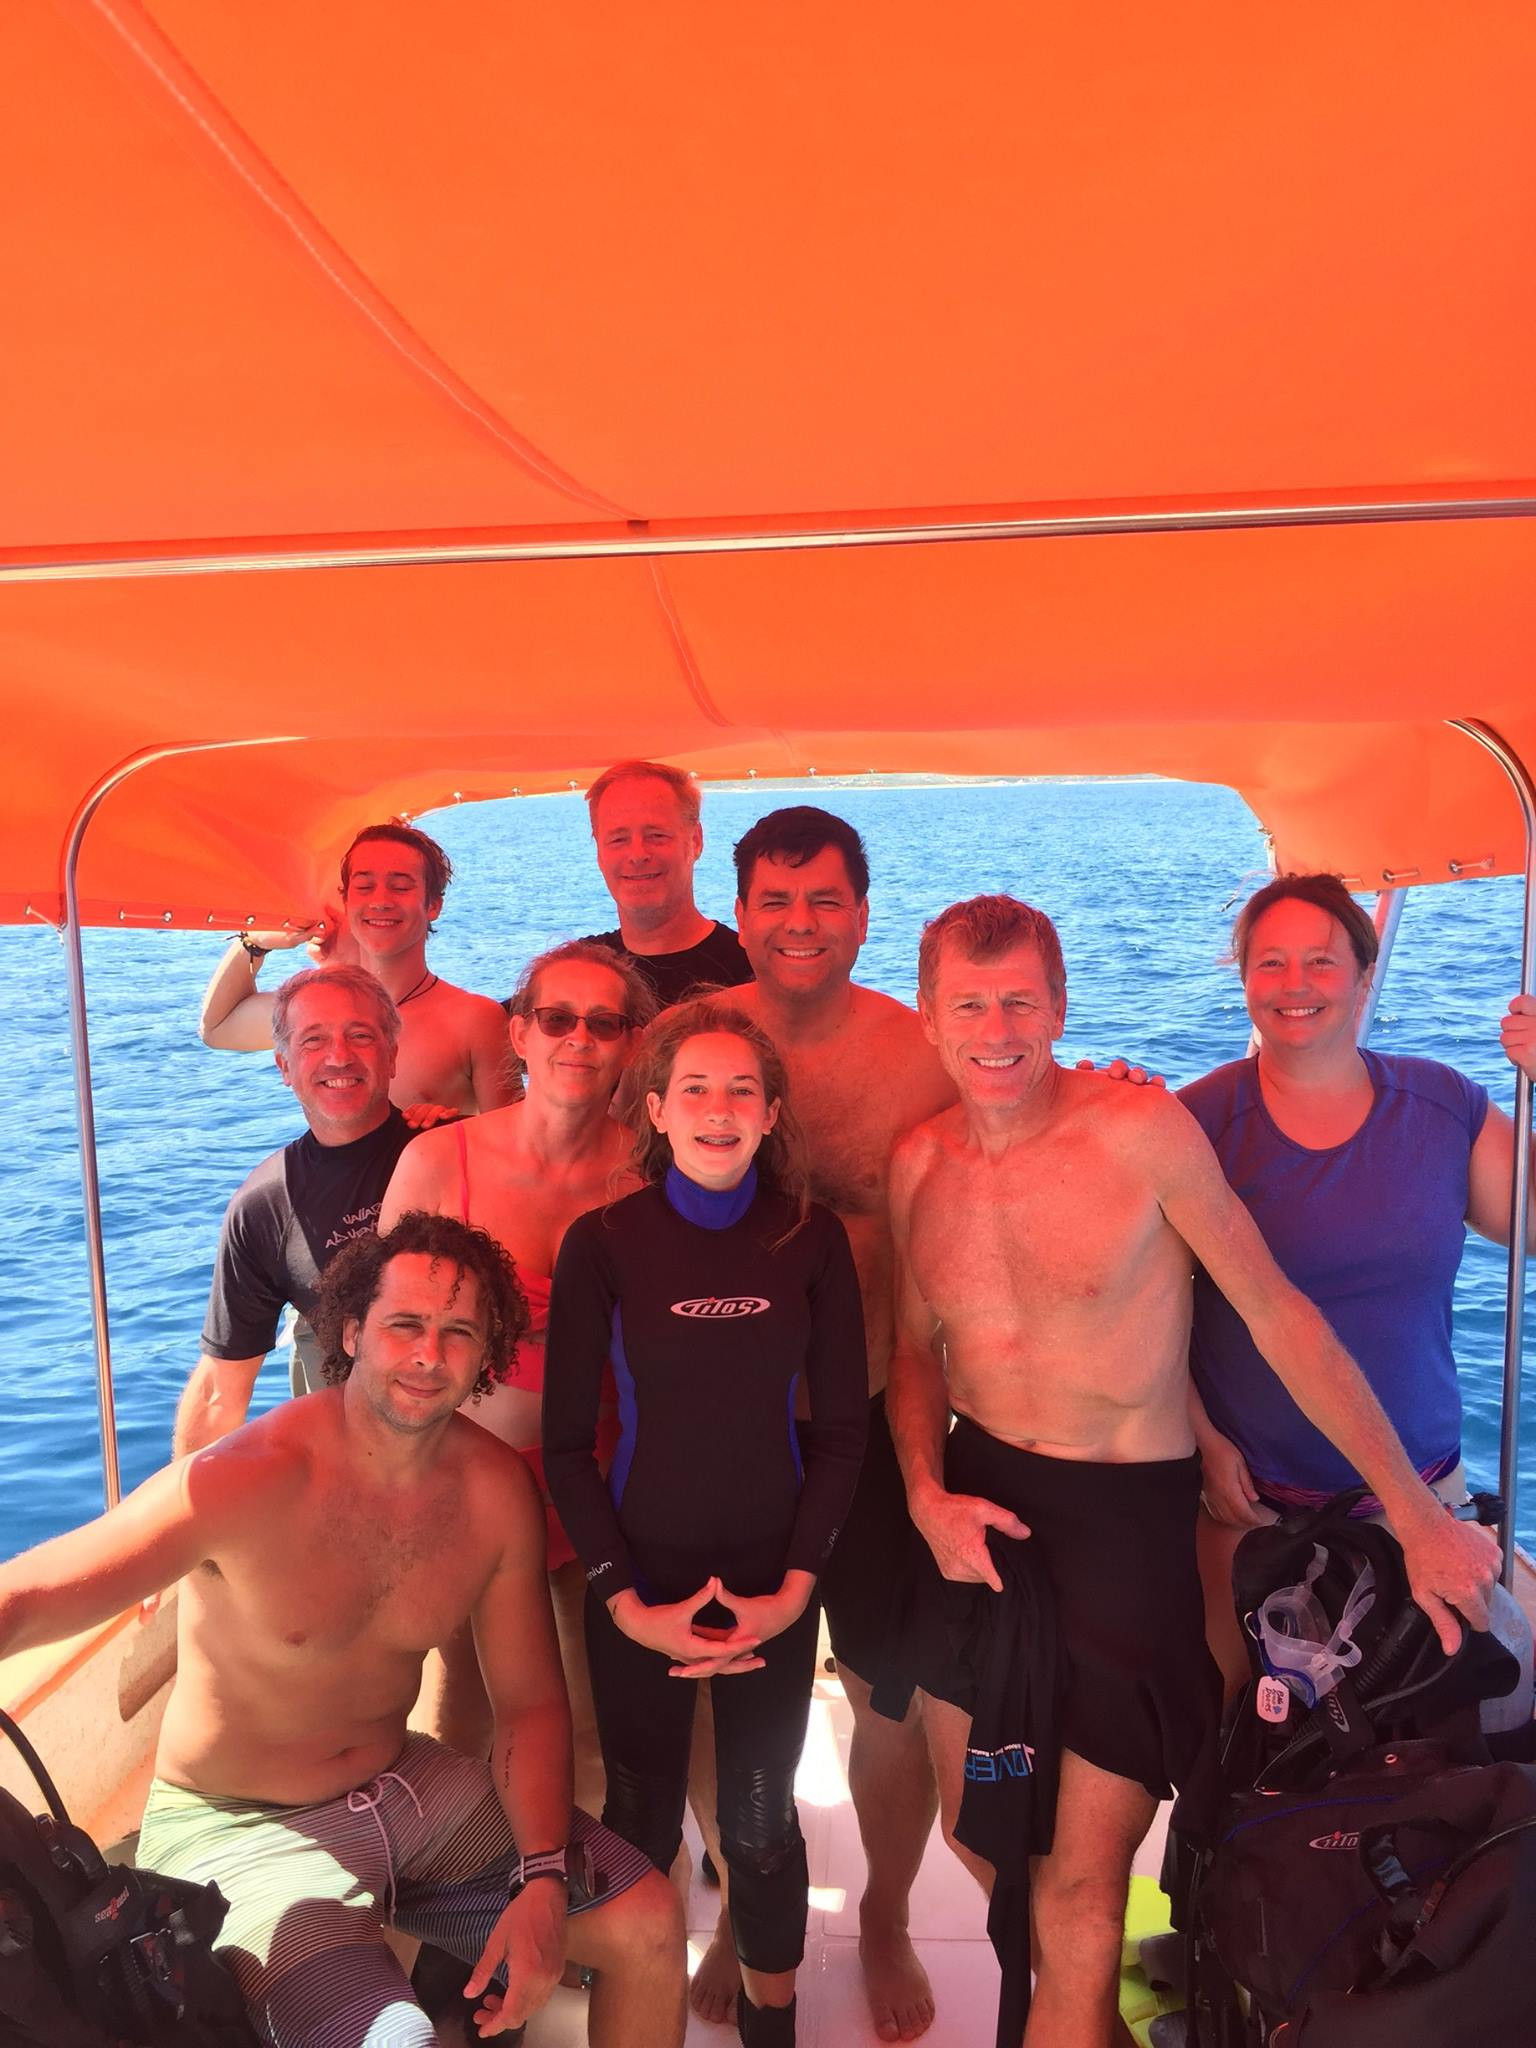 CaliDivers doing Cabo Pulmo the way it should be done - as a happy and safe team!